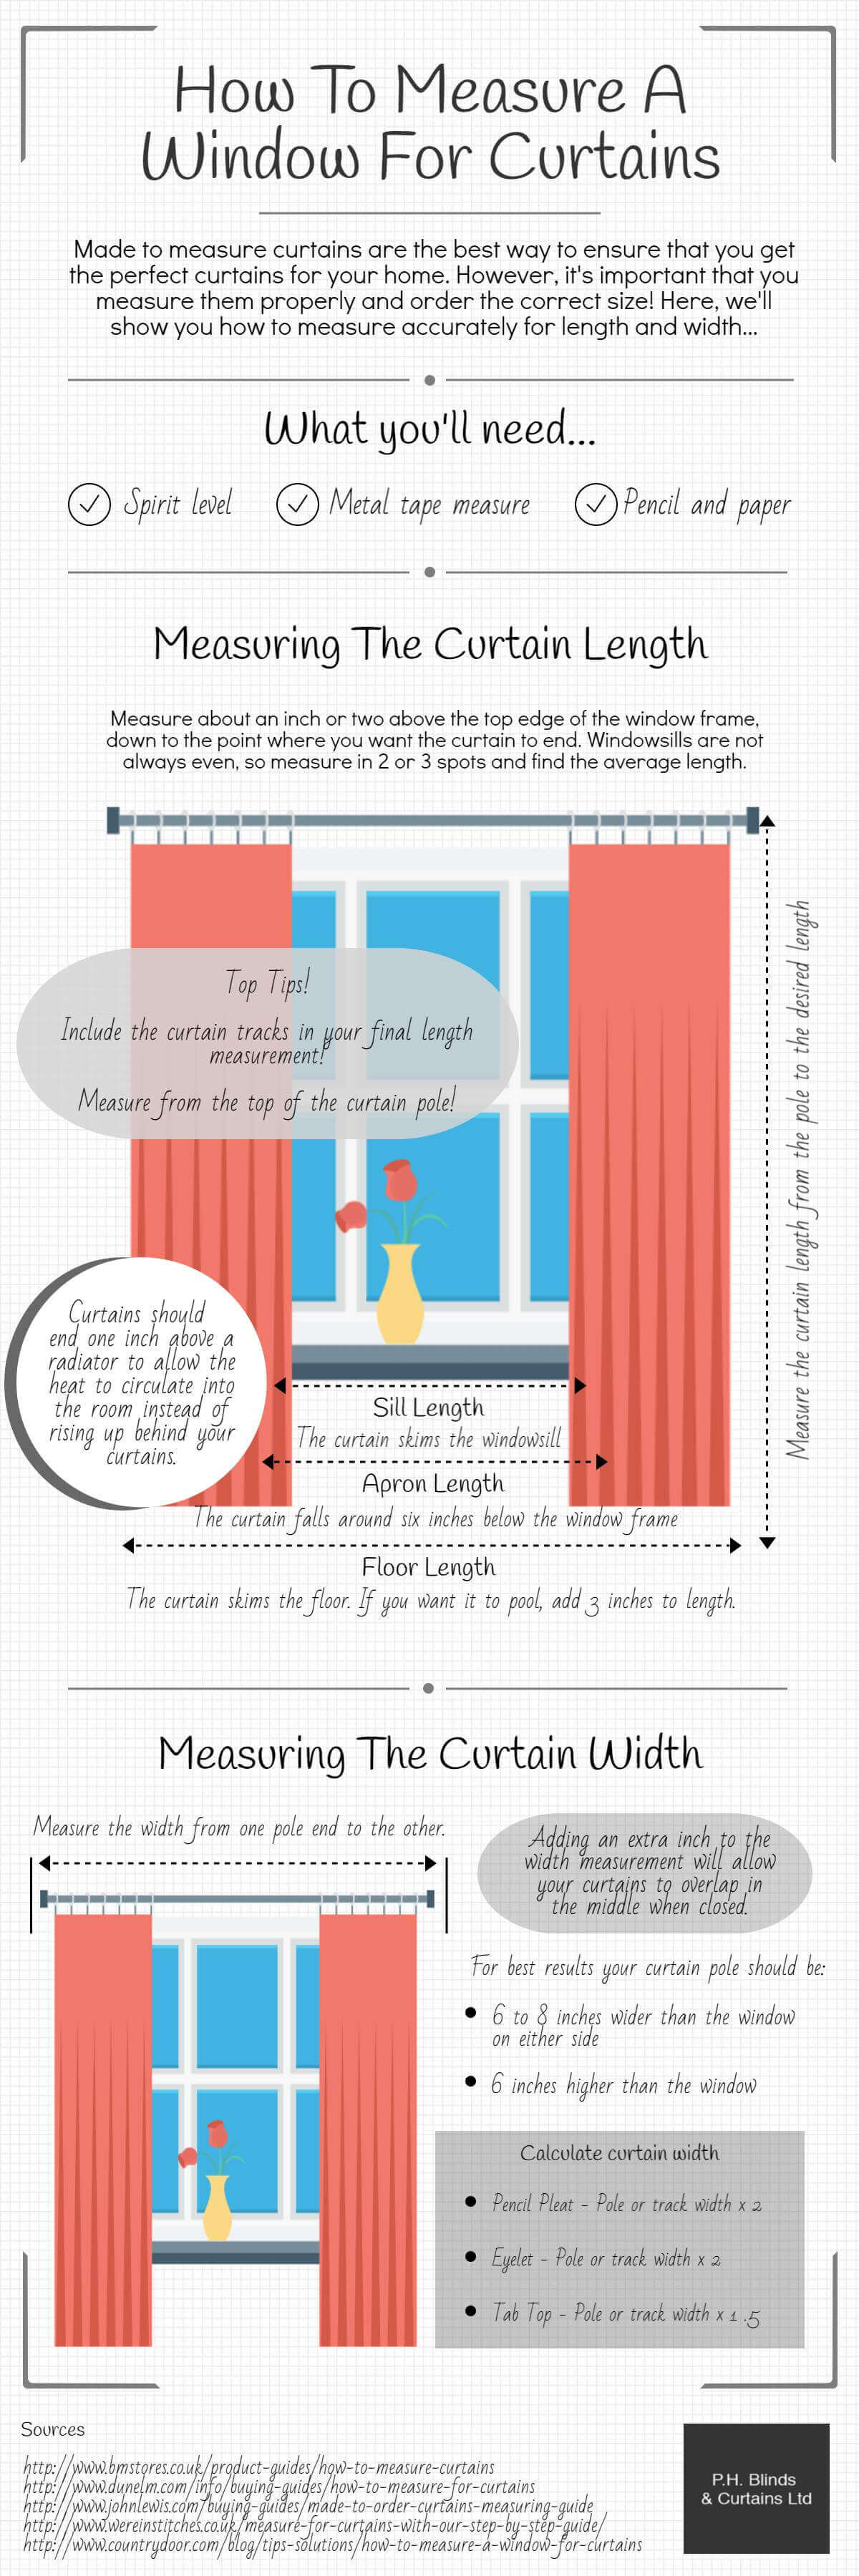 how to measure a window for curtains kravelv. Black Bedroom Furniture Sets. Home Design Ideas